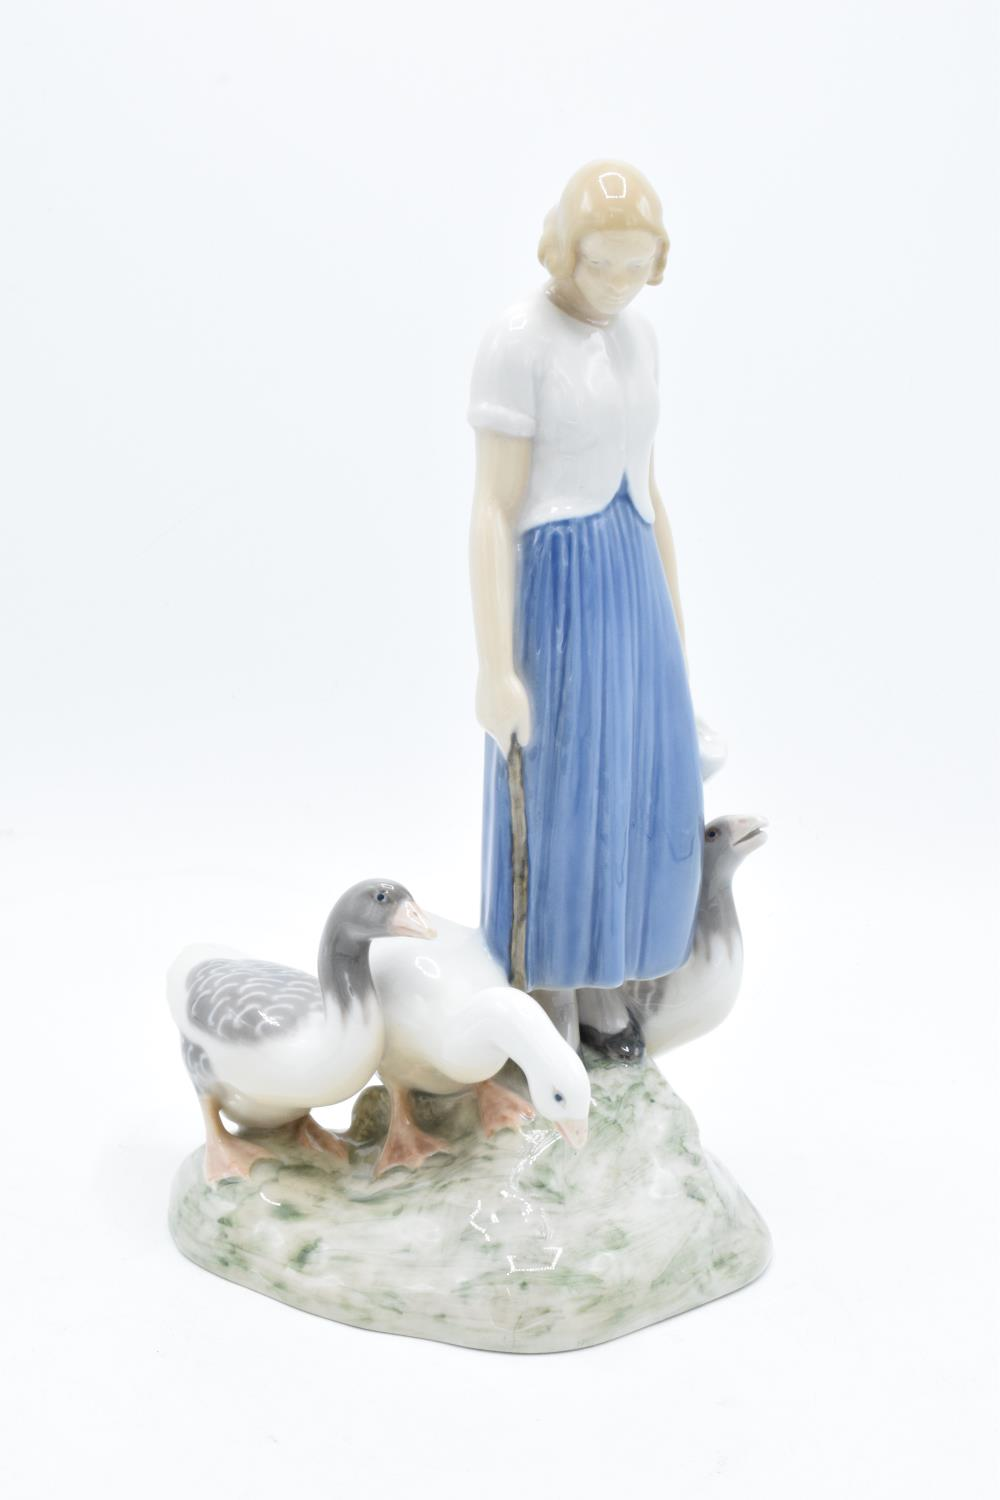 Bing and Grondahl figure Girl with Geese 2254 by Axel Locher. In good condition with no obvious